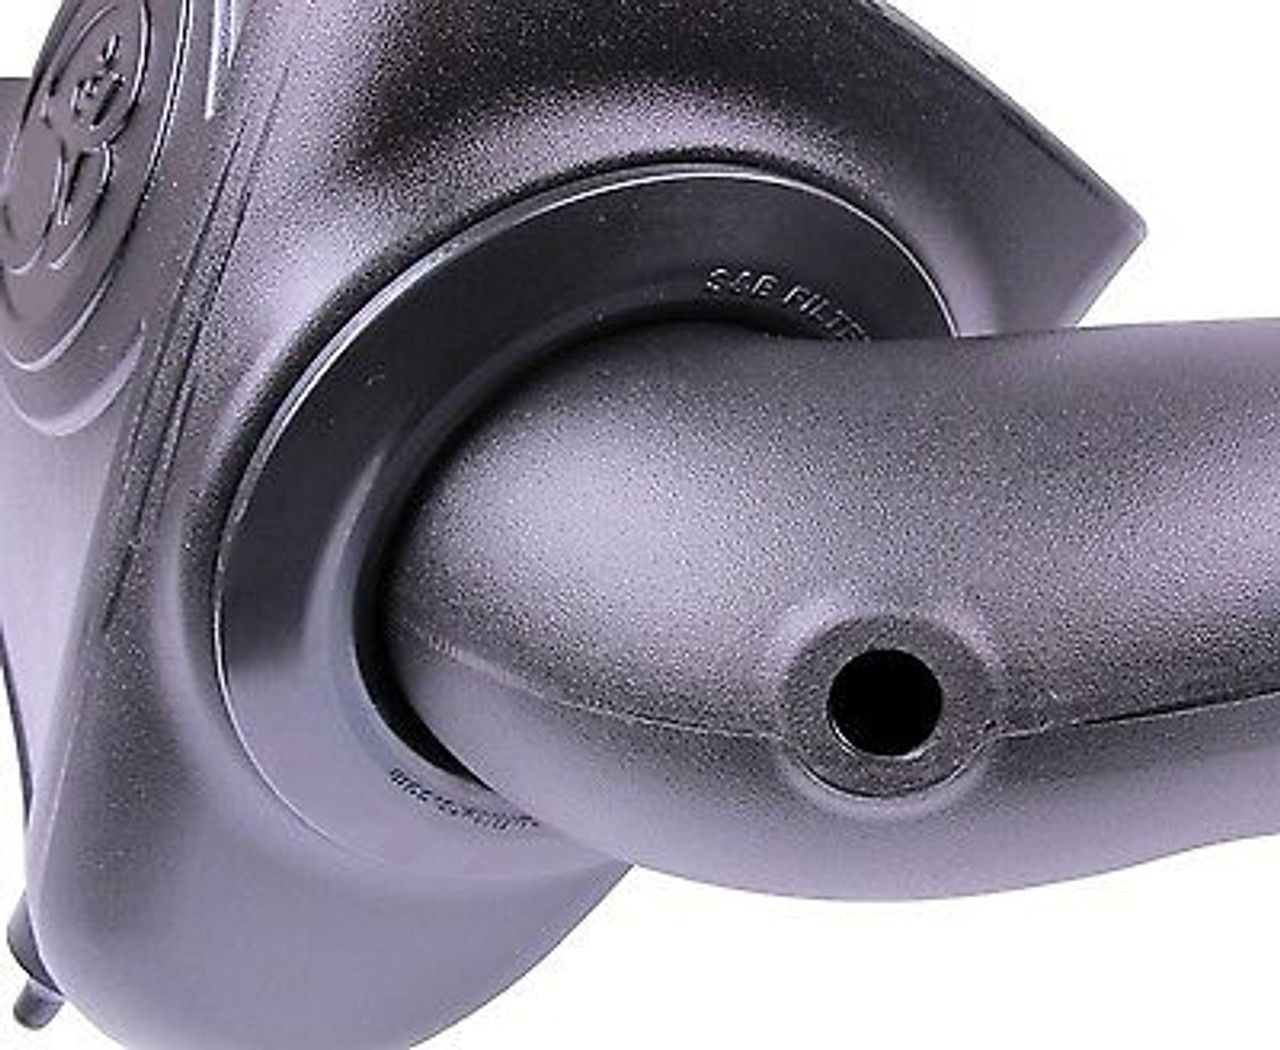 """S6212PLM 7015 75-5070 - MBRP 4"""" EXHAUST  SCT X4 TUNER  S&B AIR INTAKE 03-07 FORD POWERSTROKE DIESEL 6.0L"""